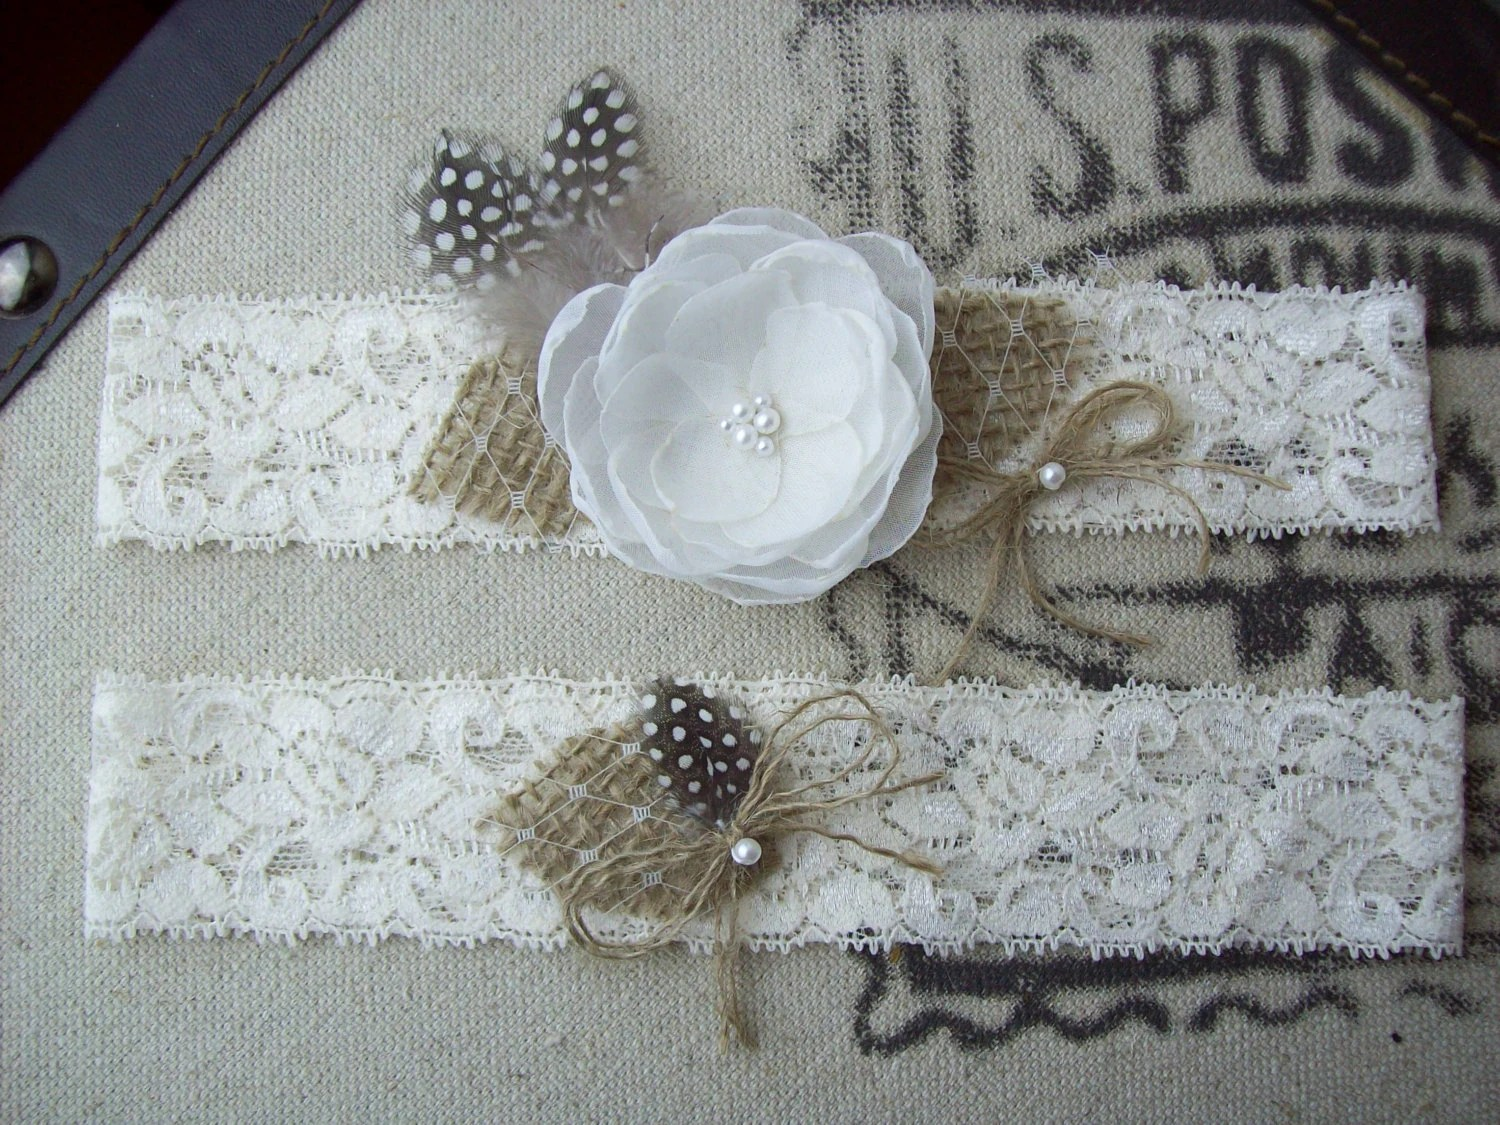 Rustic Country Chic Wedding Garter SetBurlap Wedding Garter